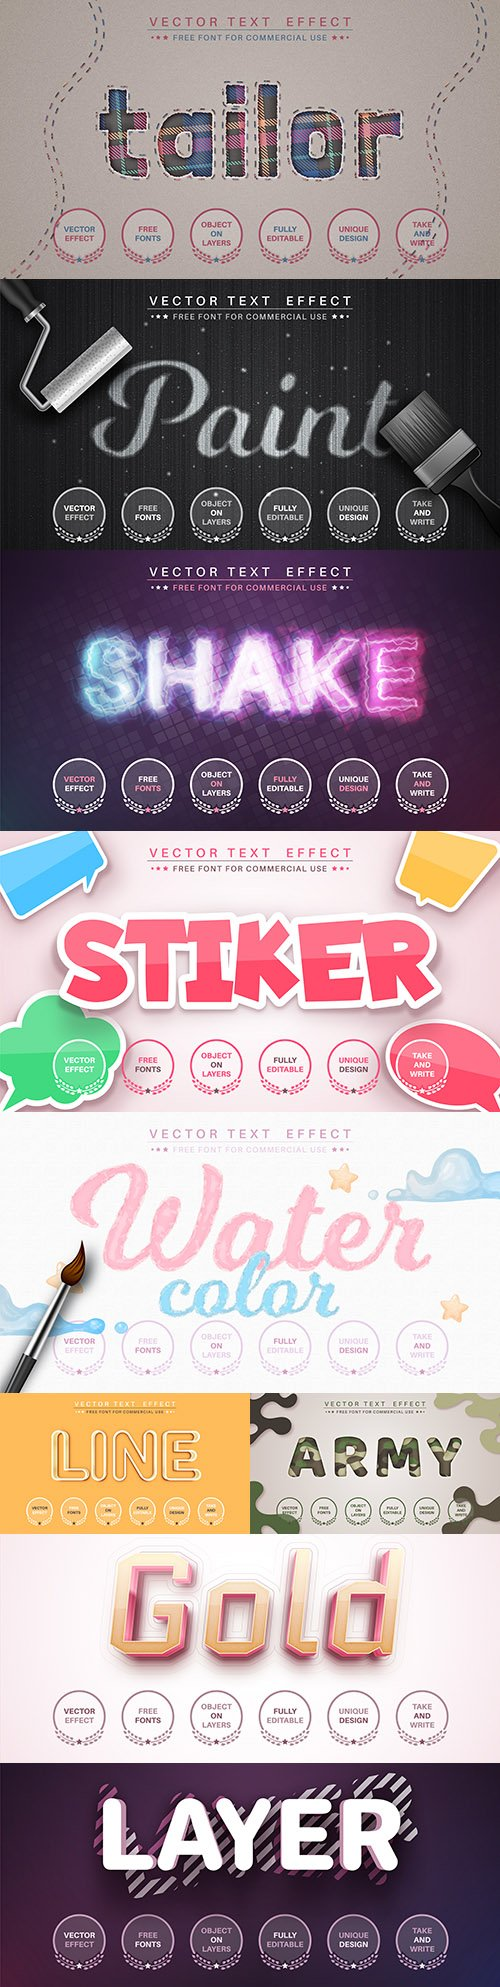 Editable font and 3d effect text design collection illustration 64